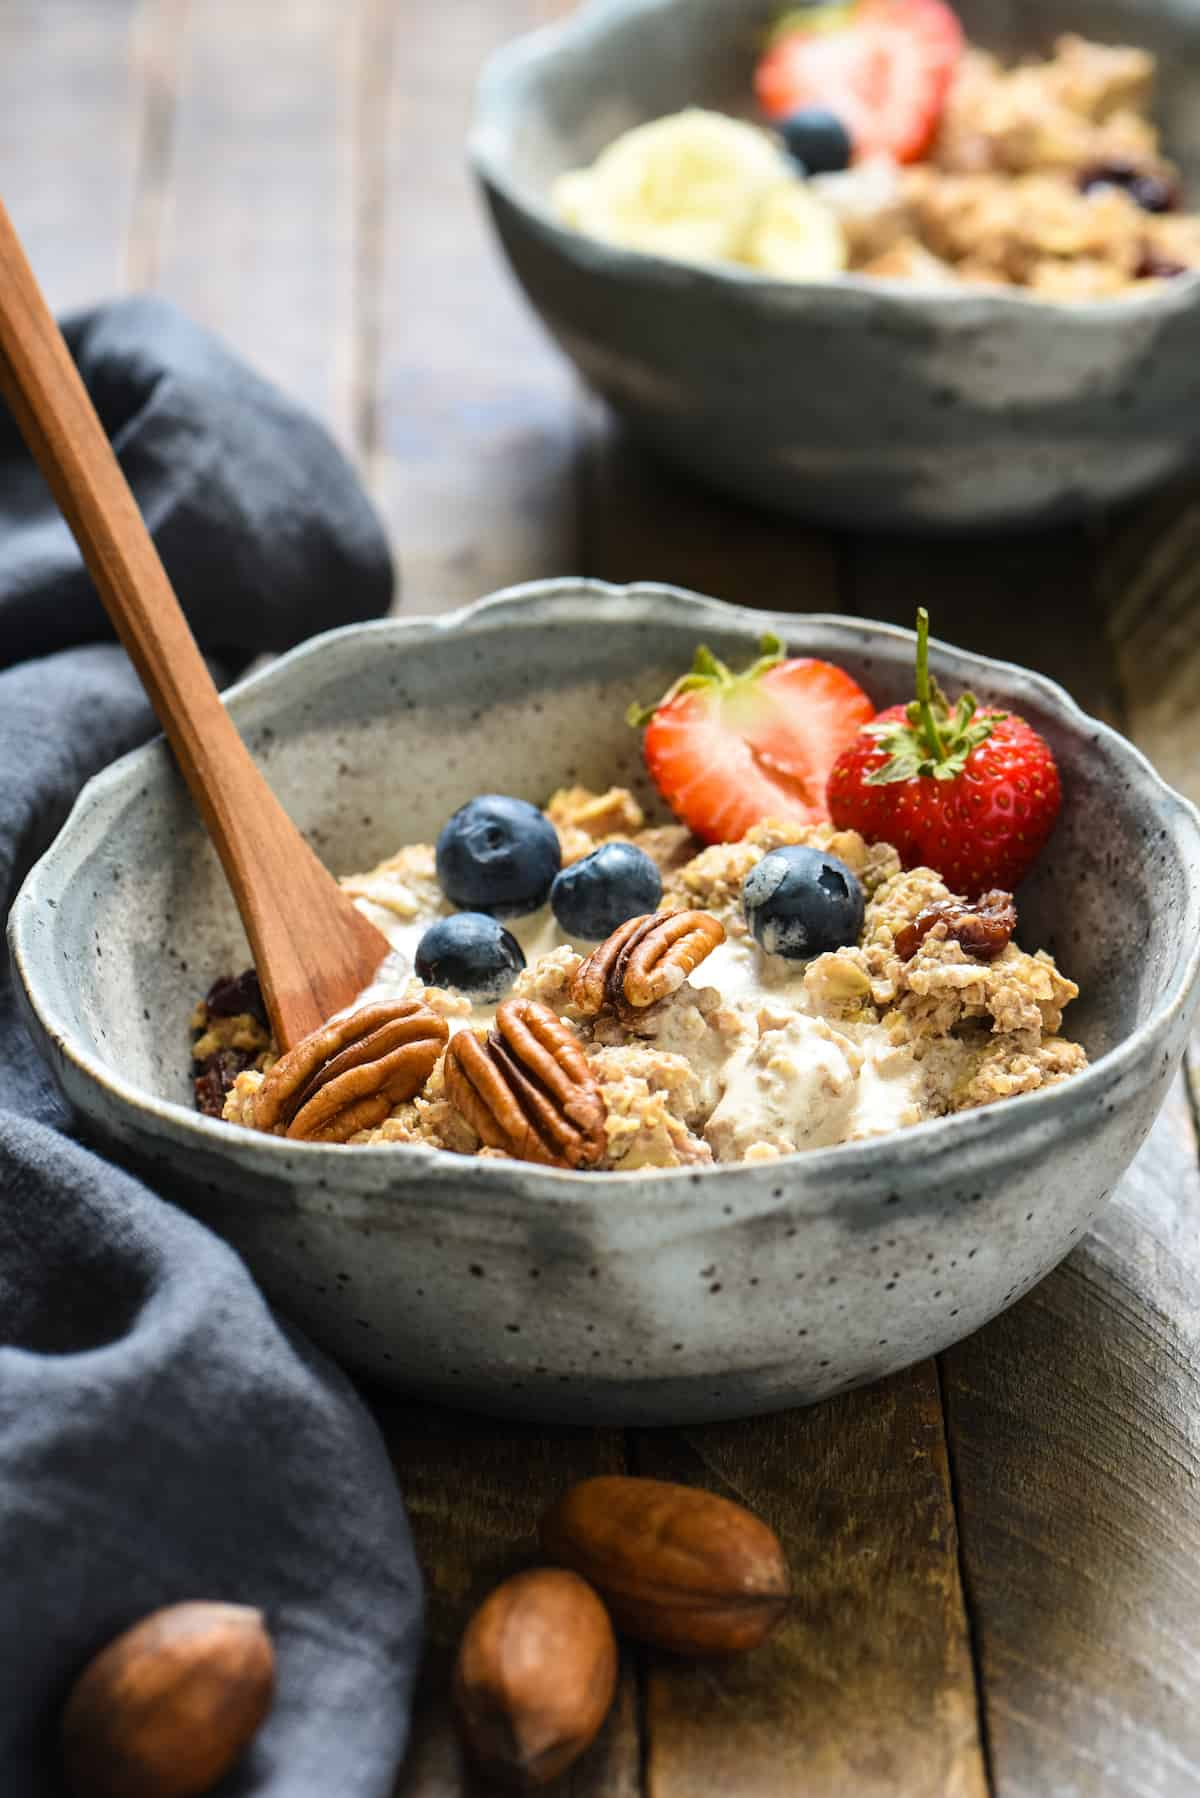 Pecan Milk Breakfast Porridge - Enjoyed warm or cold, this protein-rich, whole grain breakfast made with easy homemade pecan milk will keep you fueled all day! | foxeslovelemons.com